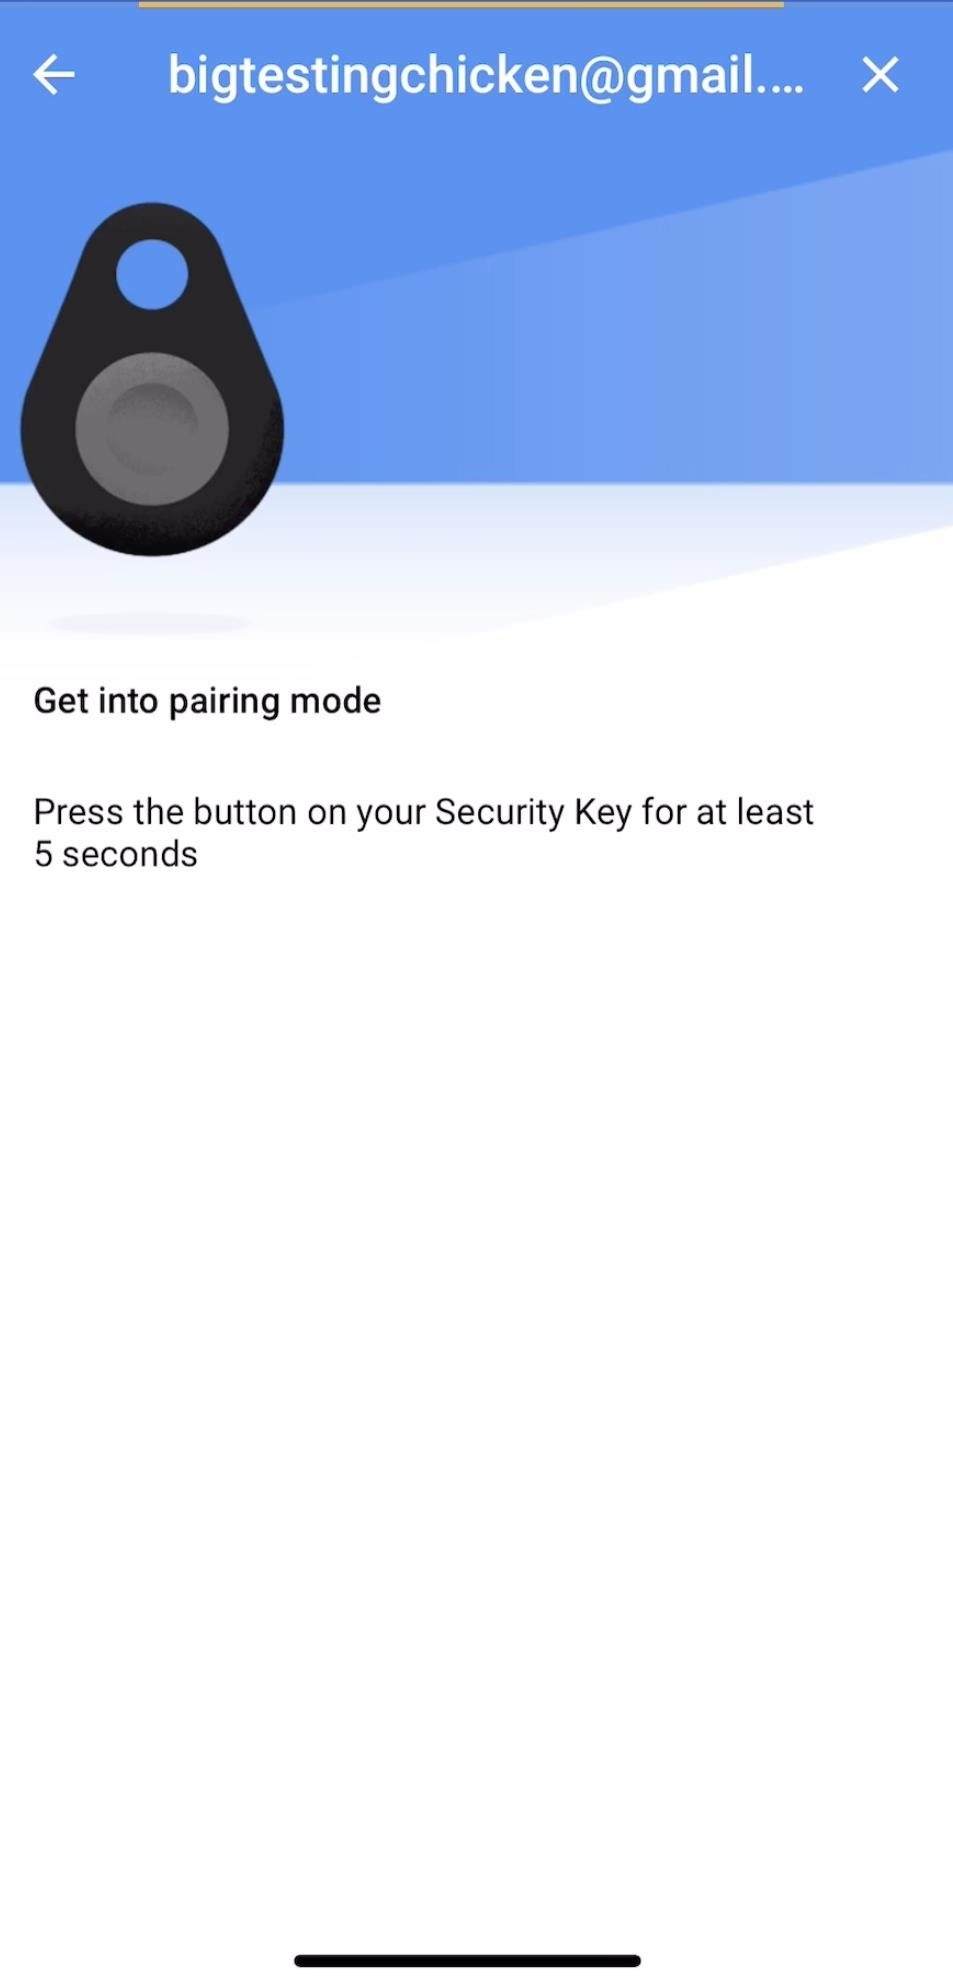 Use U2F Security Keys on Your Smartphone to Access Your Google Account with Advanced Protection